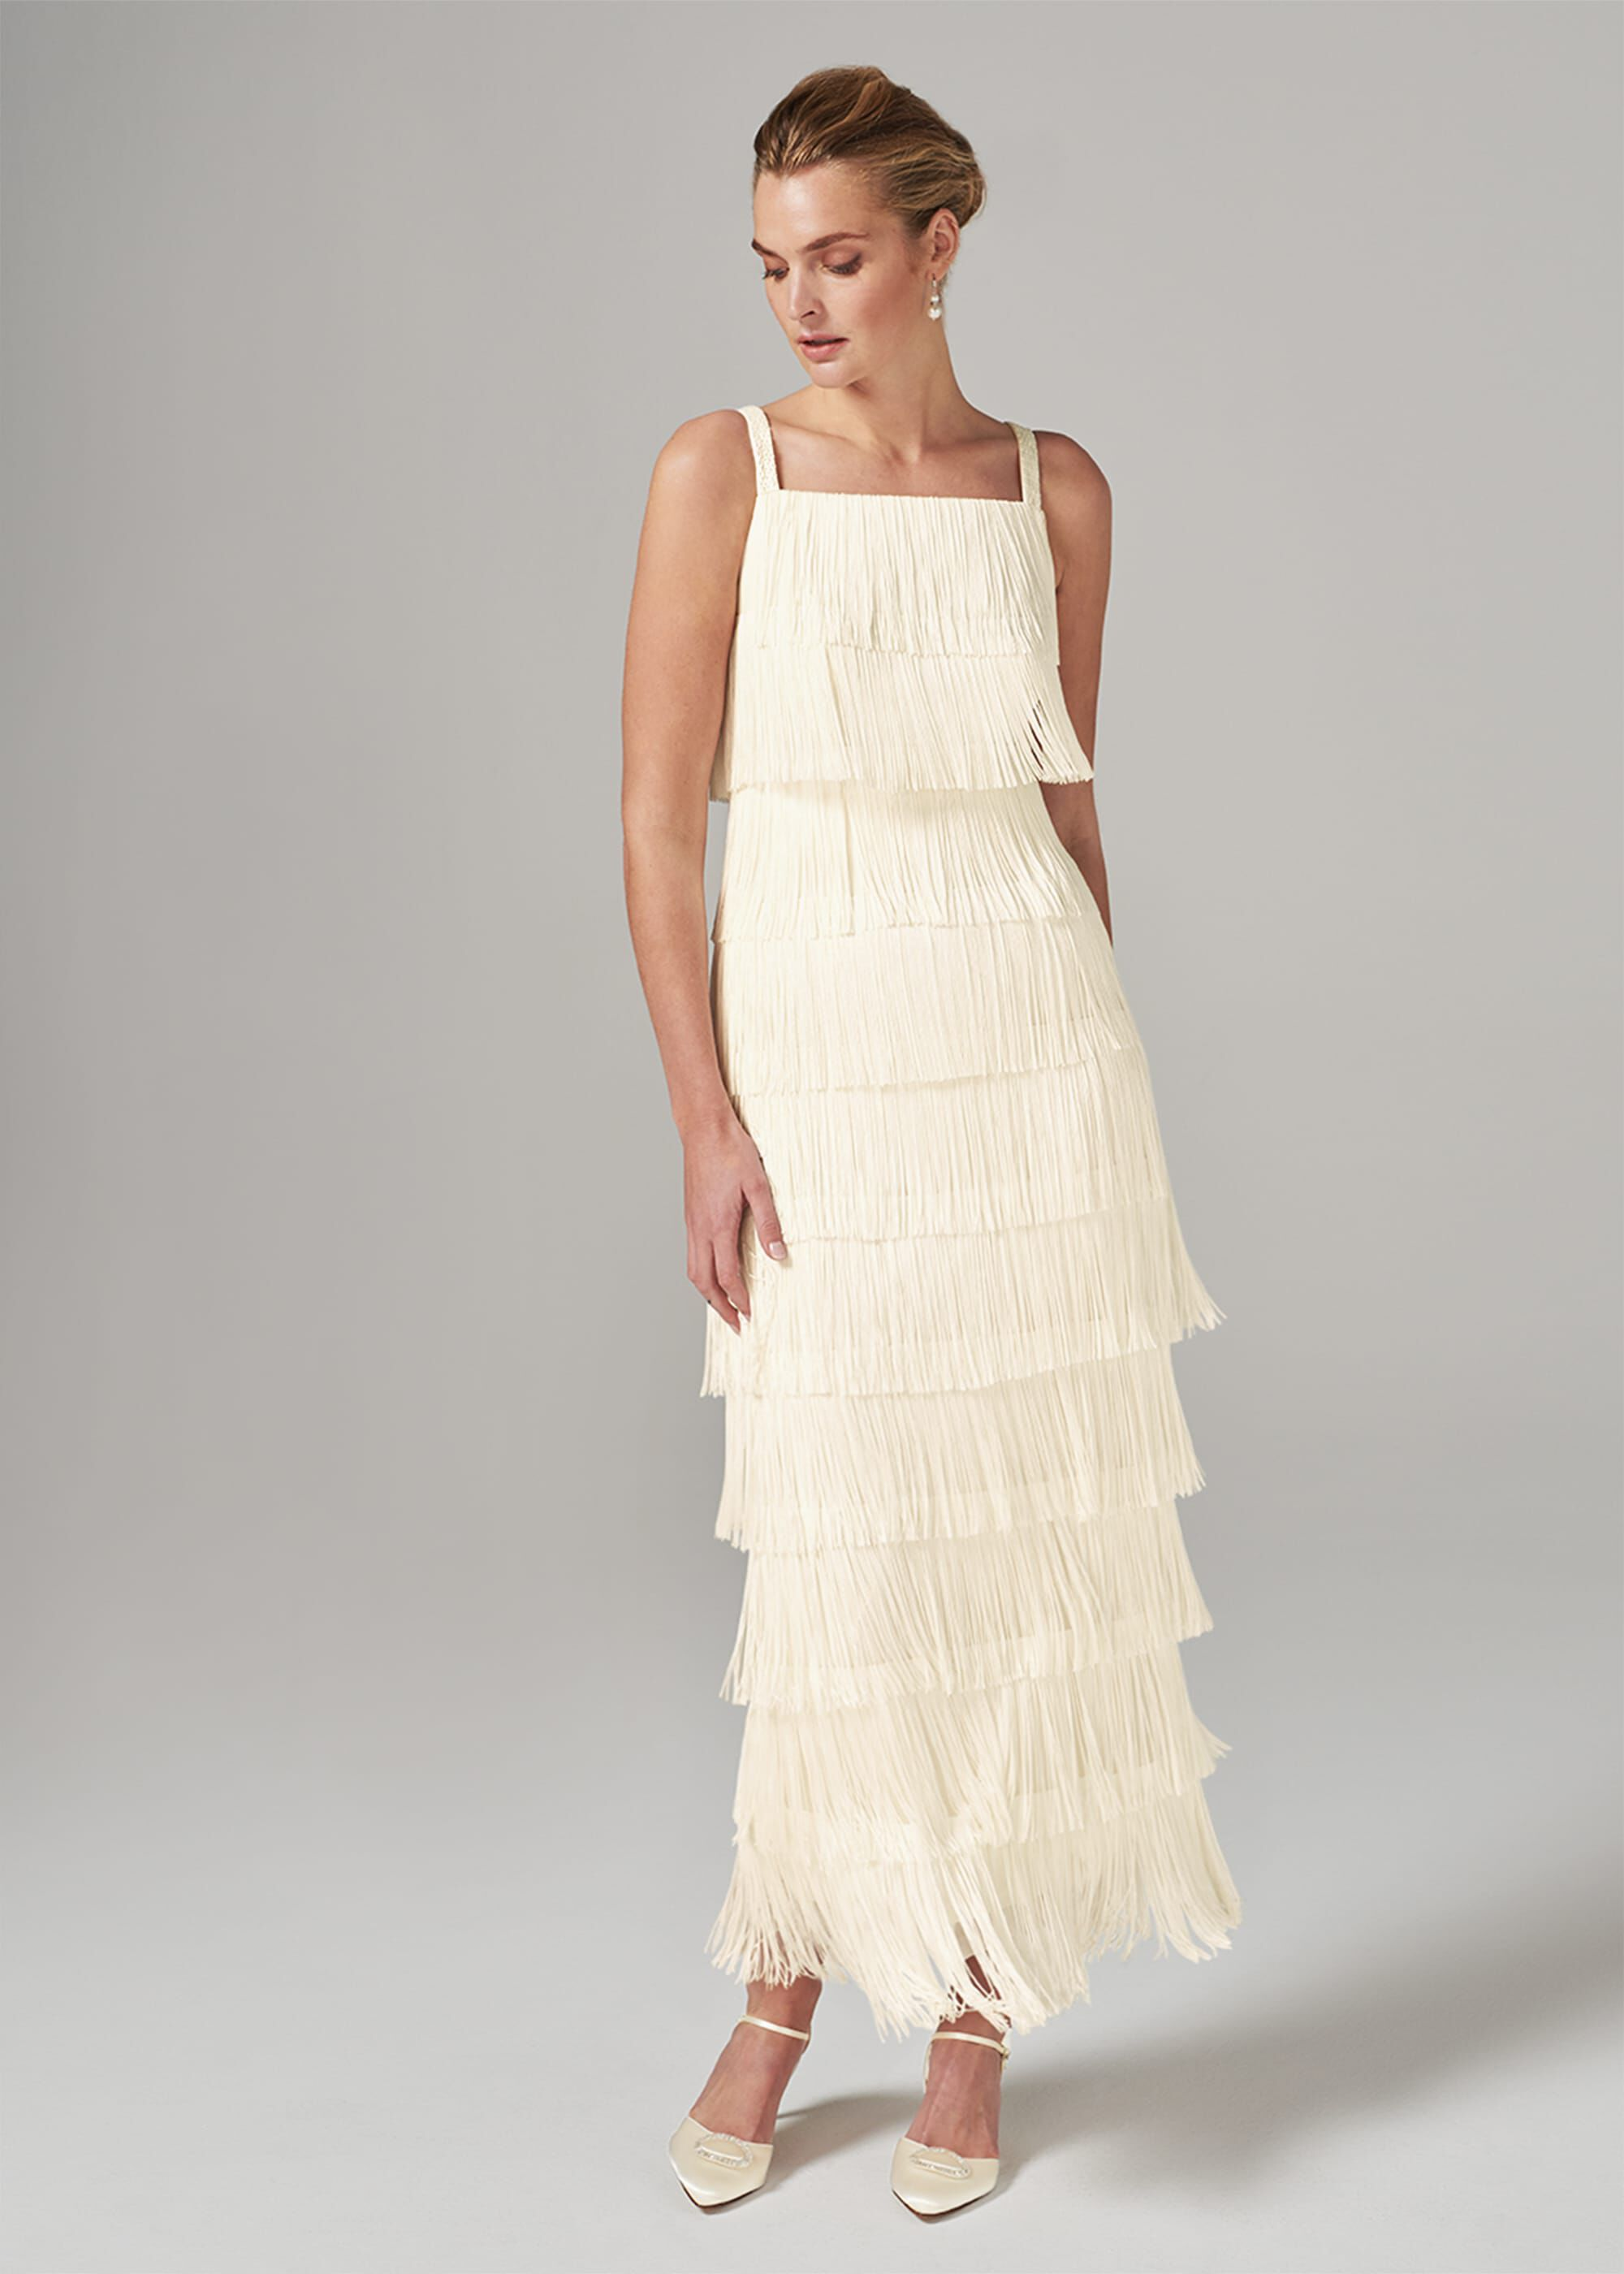 1920s Wedding Dresses- Art Deco Wedding Dress, Gatsby Wedding Dress Phase Eight Elecia Fringe Maxi Dress Cream Maxi £187.50 AT vintagedancer.com